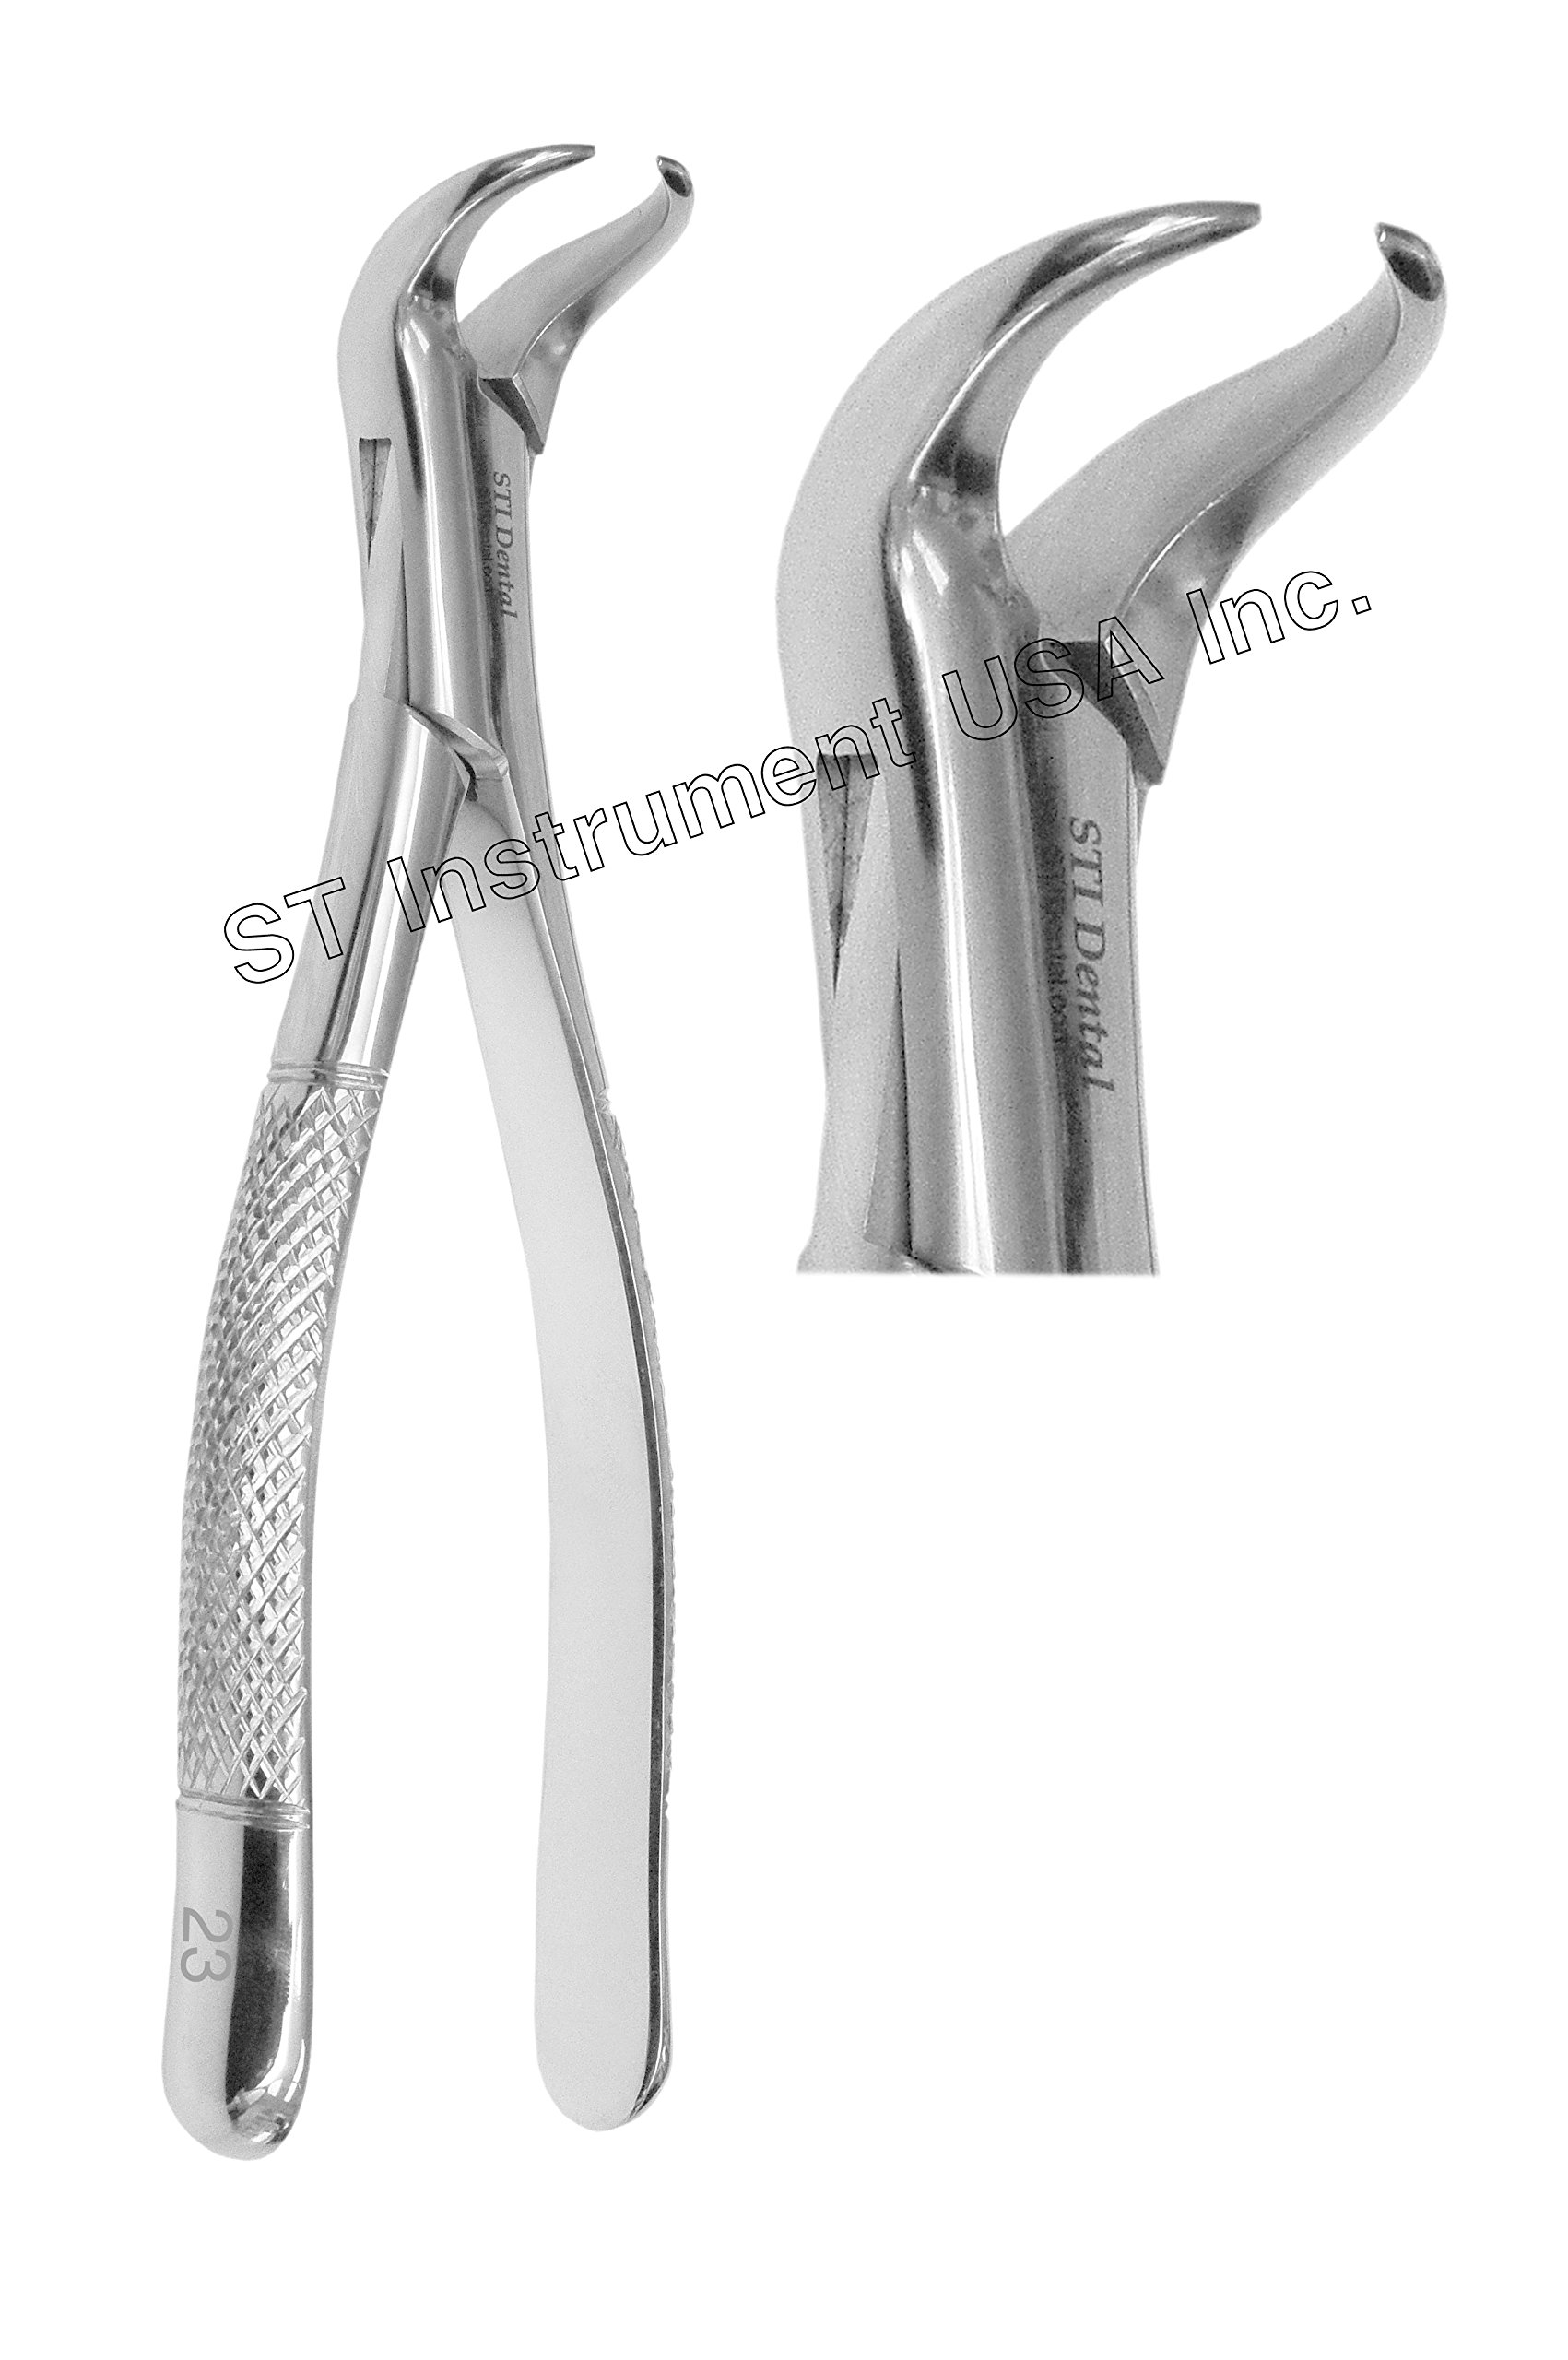 Dental Tooth Extracting Forceps 23 (Cow Horn) Code: C-0264